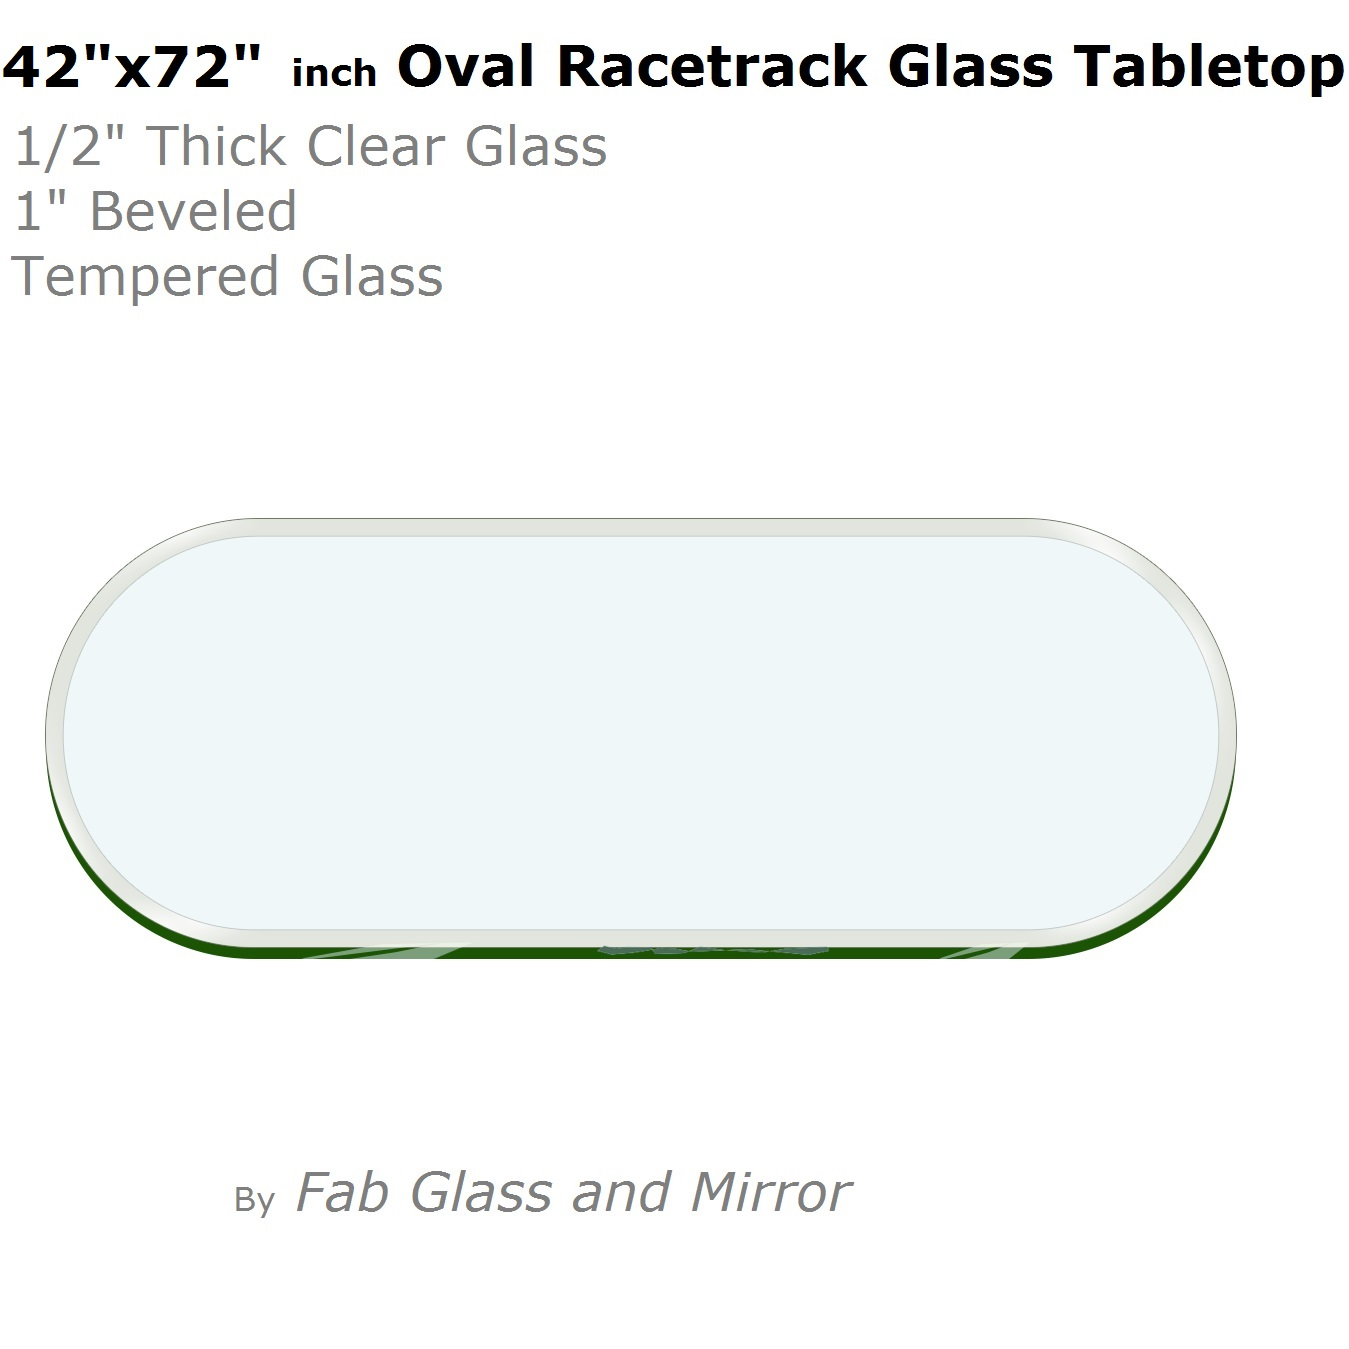 Oval Racetrack Glass Table Top 1 2 034